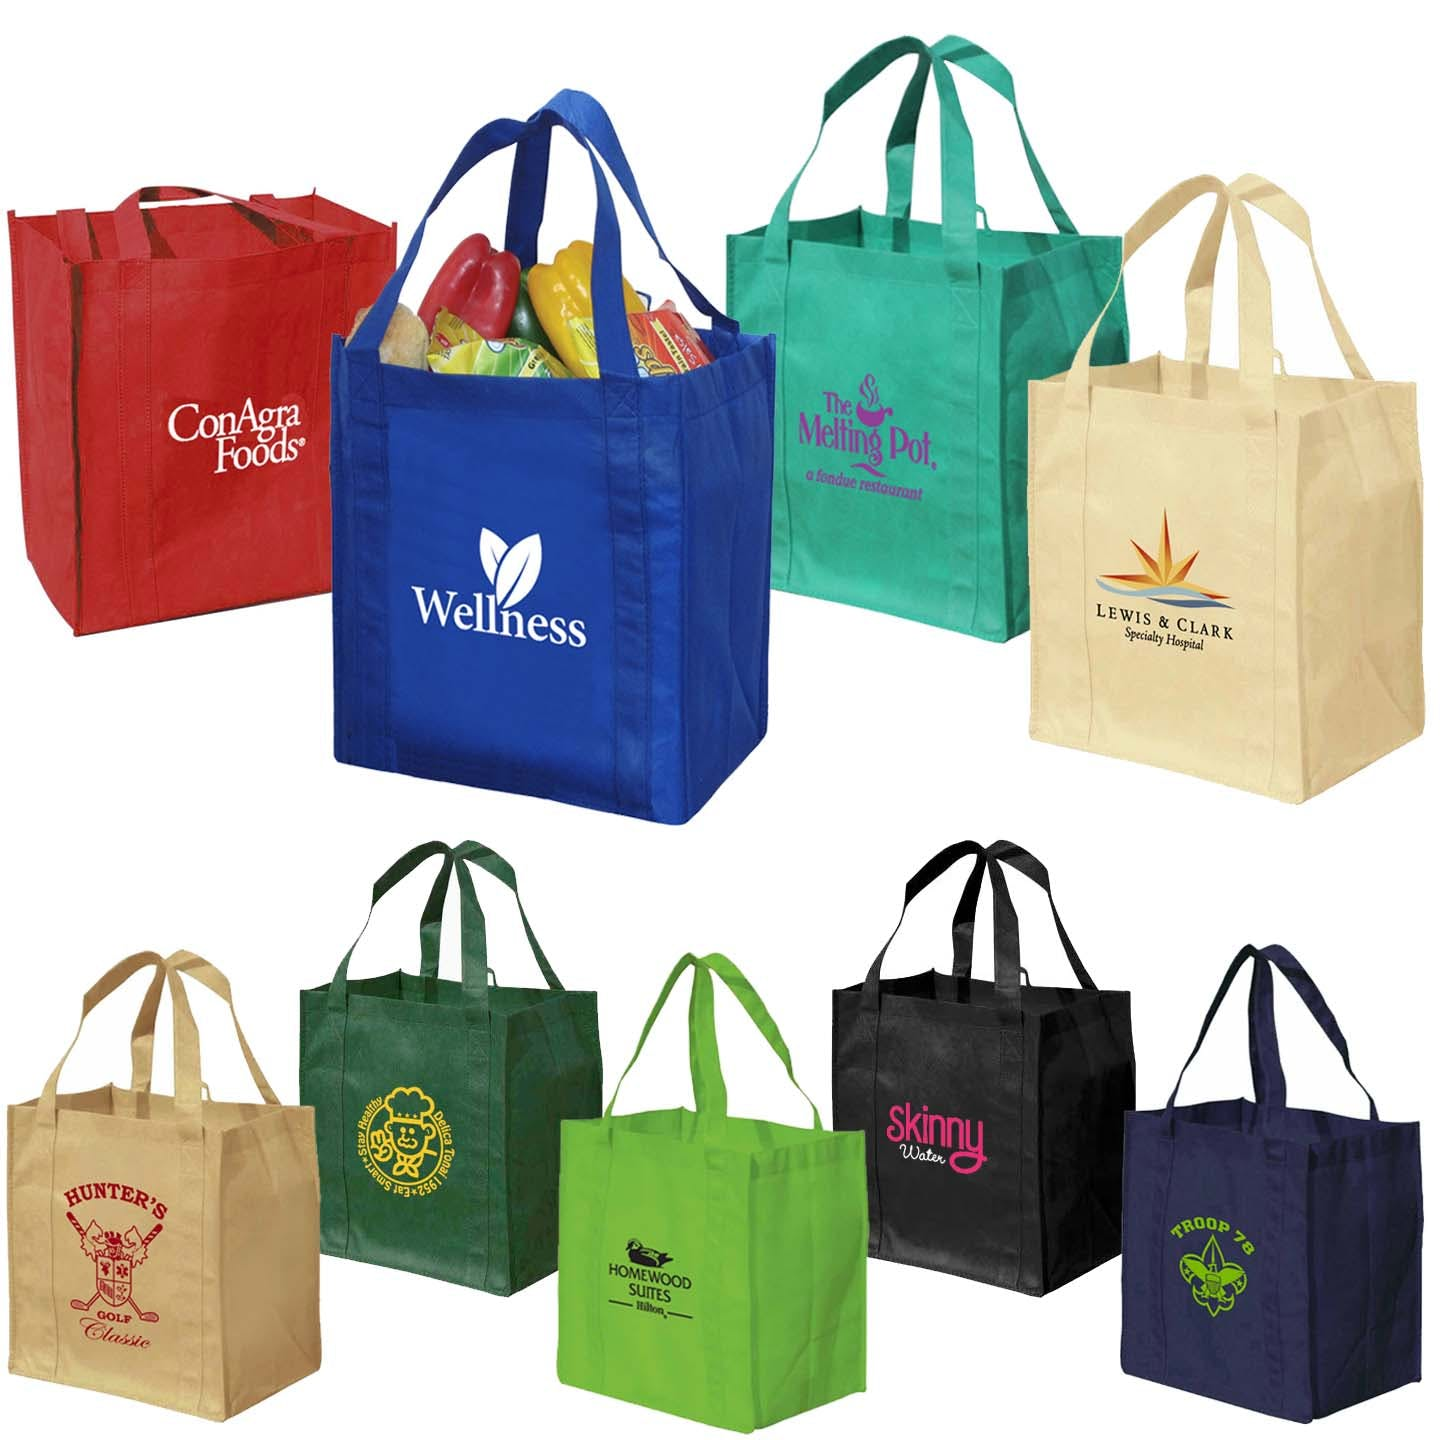 Reusable Solid Color Grocery Tote Bag (Item # AFGOT-GFVLK) Recycled and Eco Friendly Promotional Item sold by InkEasy